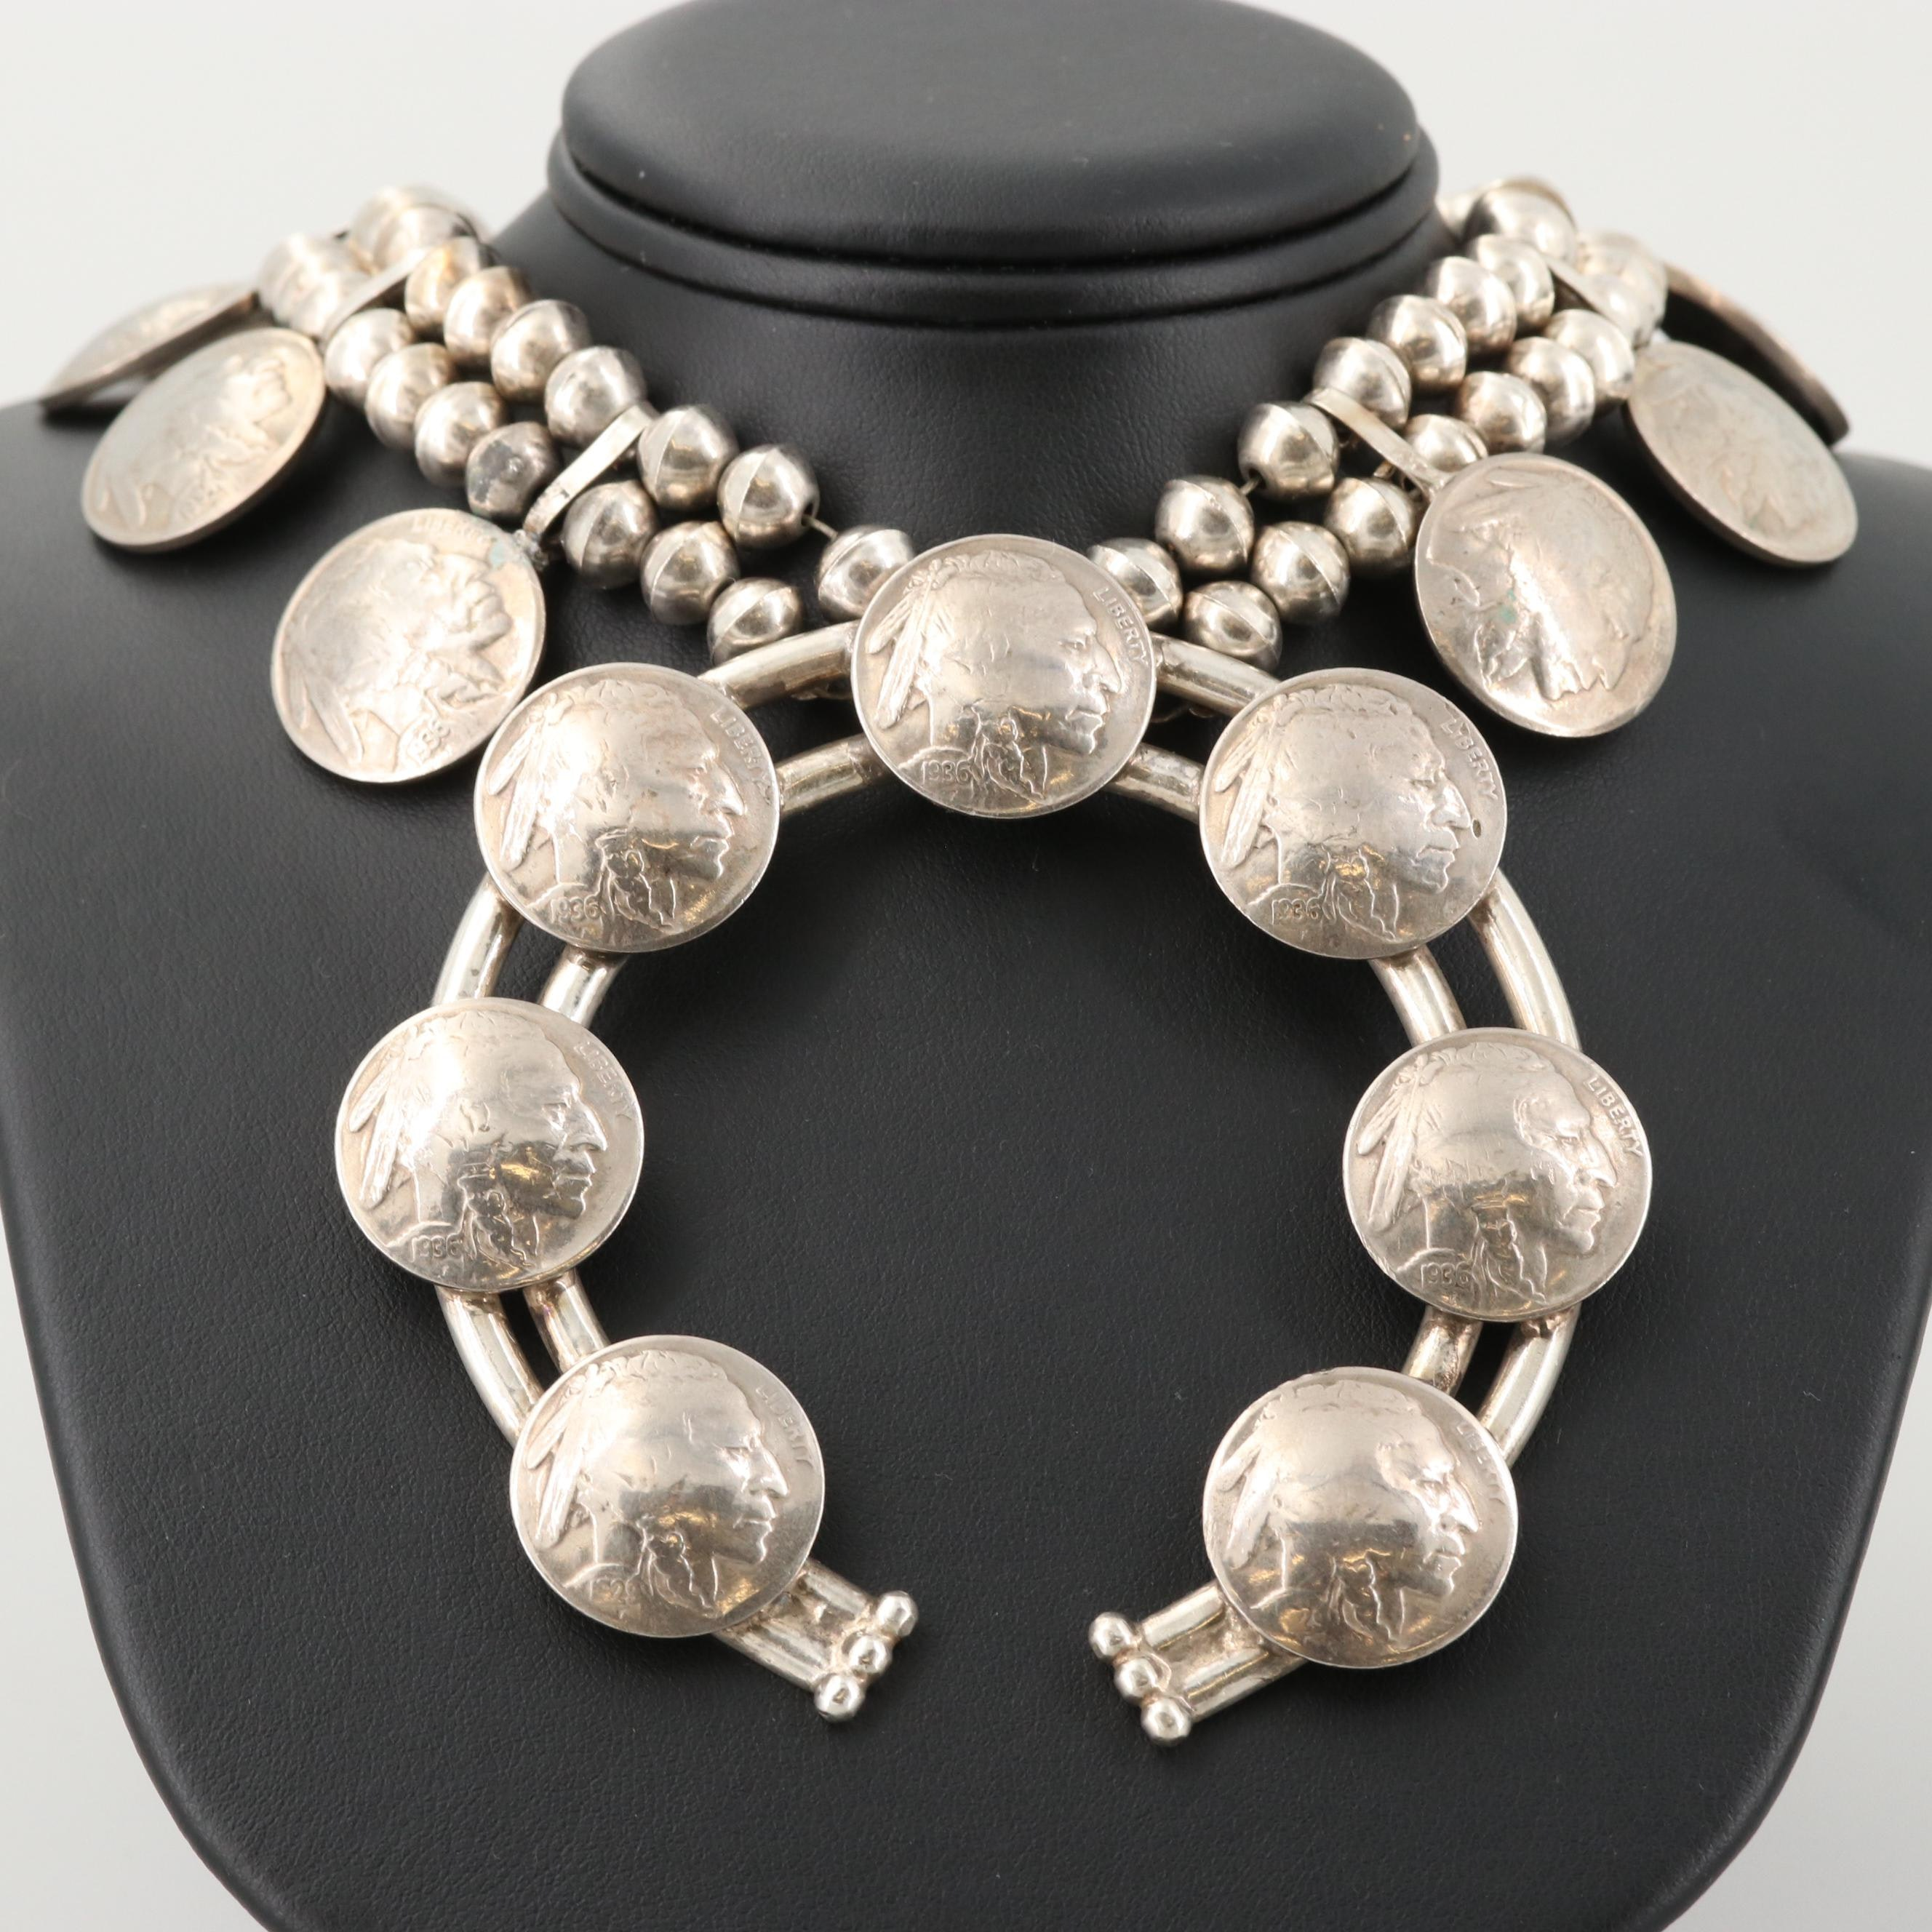 Mary Dayea Navajo Diné Sterling Naja Pendant Necklace with Buffalo Nickels